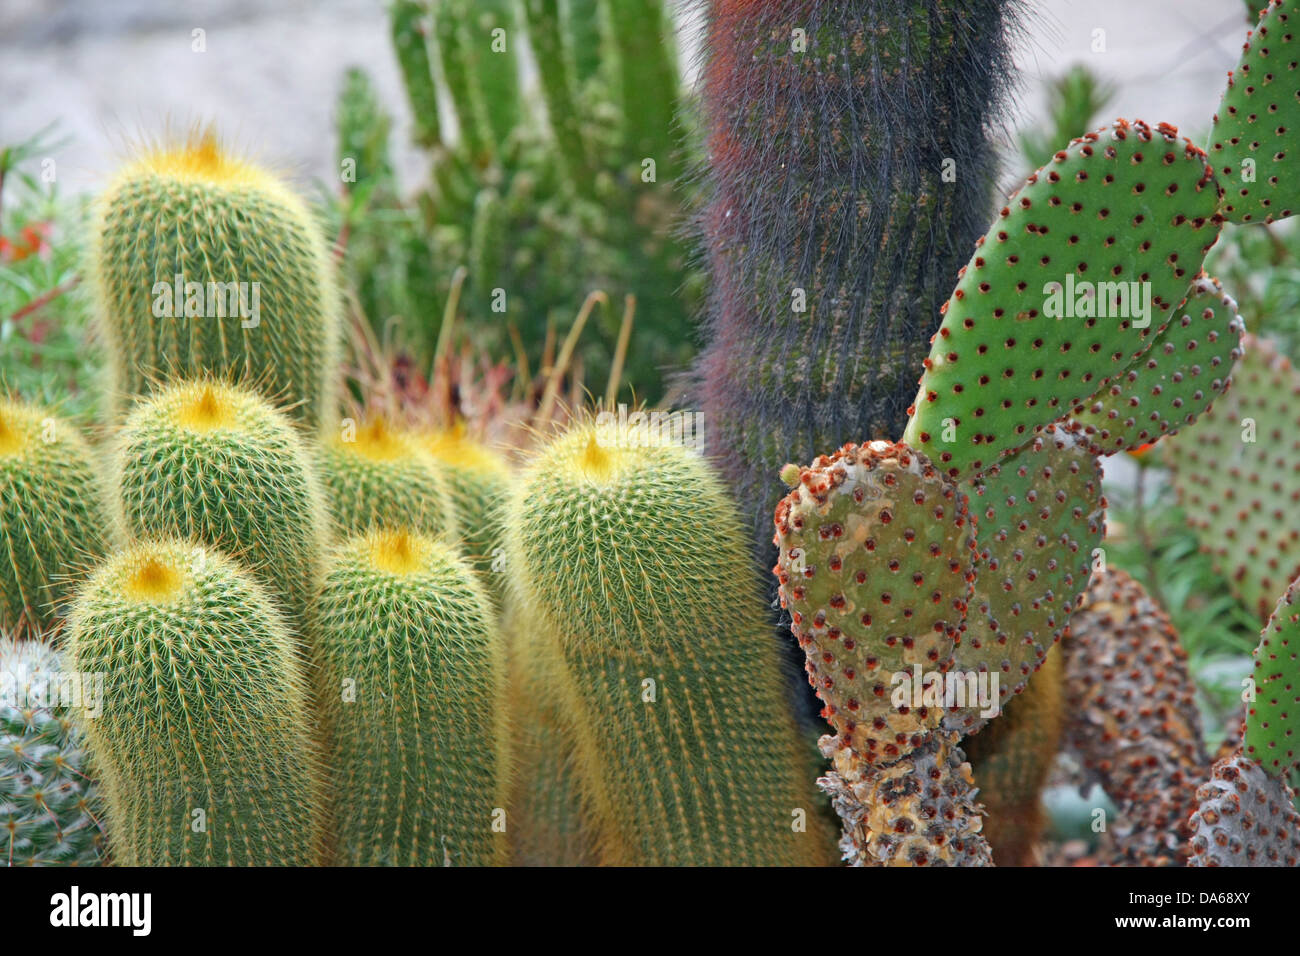 succulents and cactus with very sharp prickles and thorns of the cactus desert plants - Stock Image